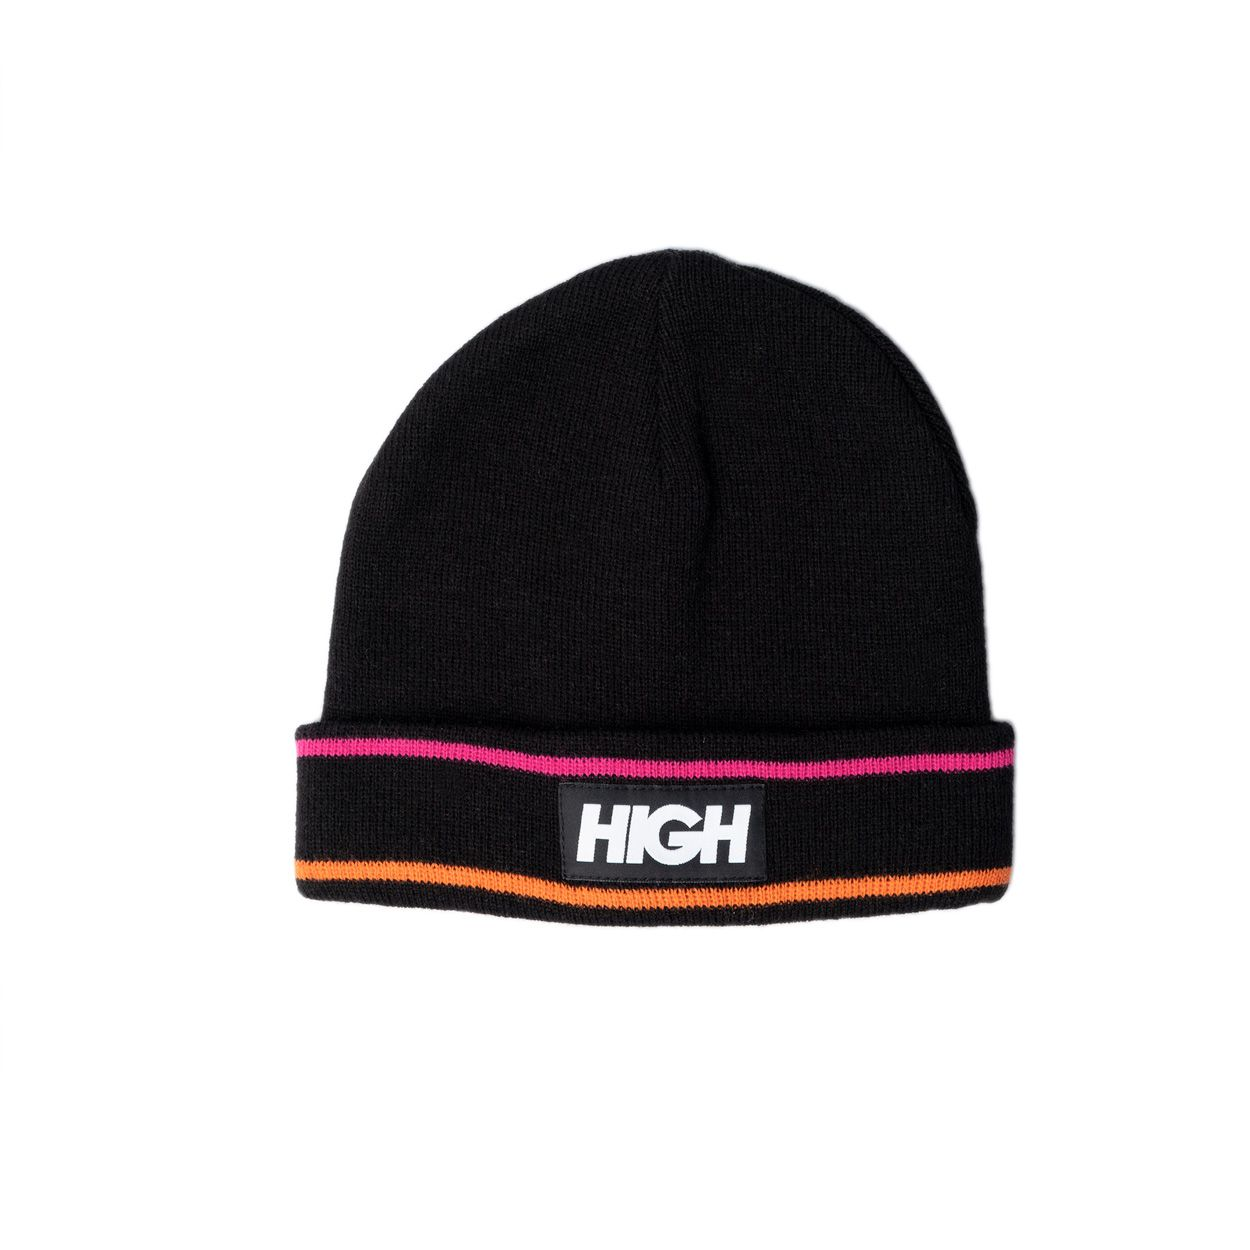 Gorro High Beanie Kidz Black